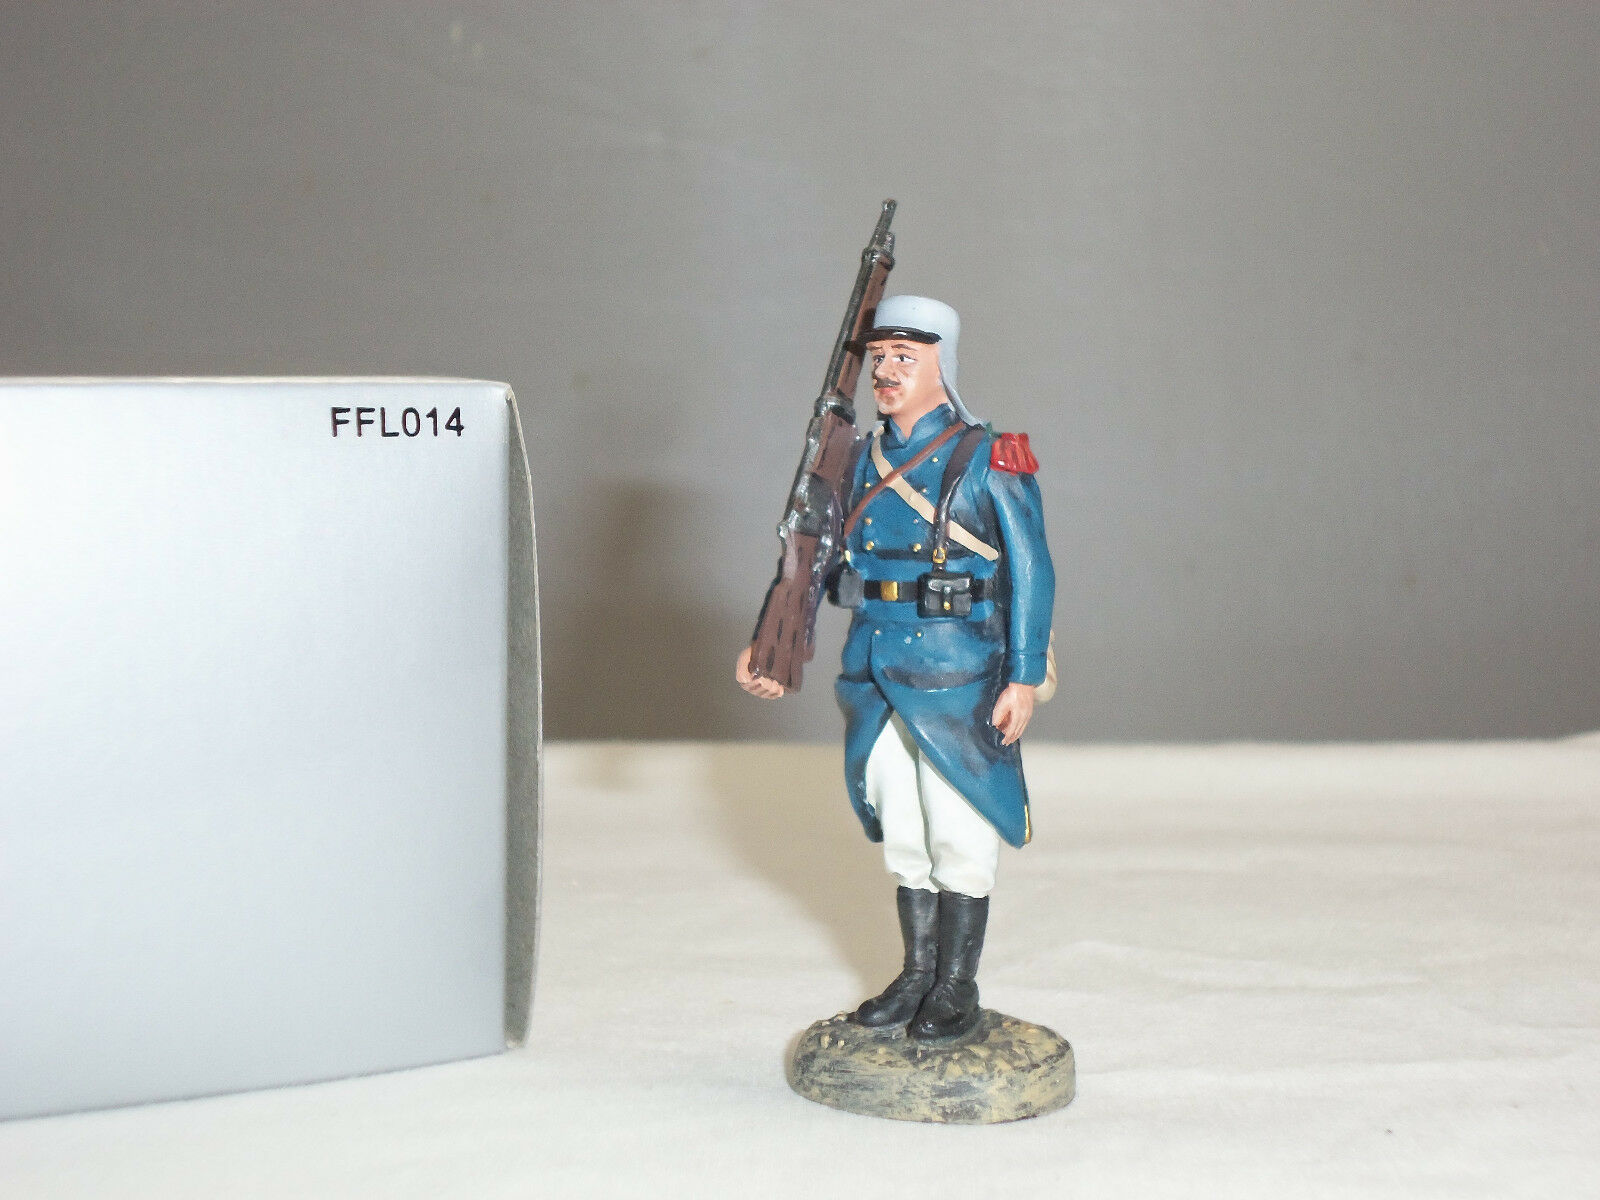 THOMAS GUNN FFL014 FRENCH FOREIGN LEGION PARADE SOLDIER WITH STUBBLE FIGURE